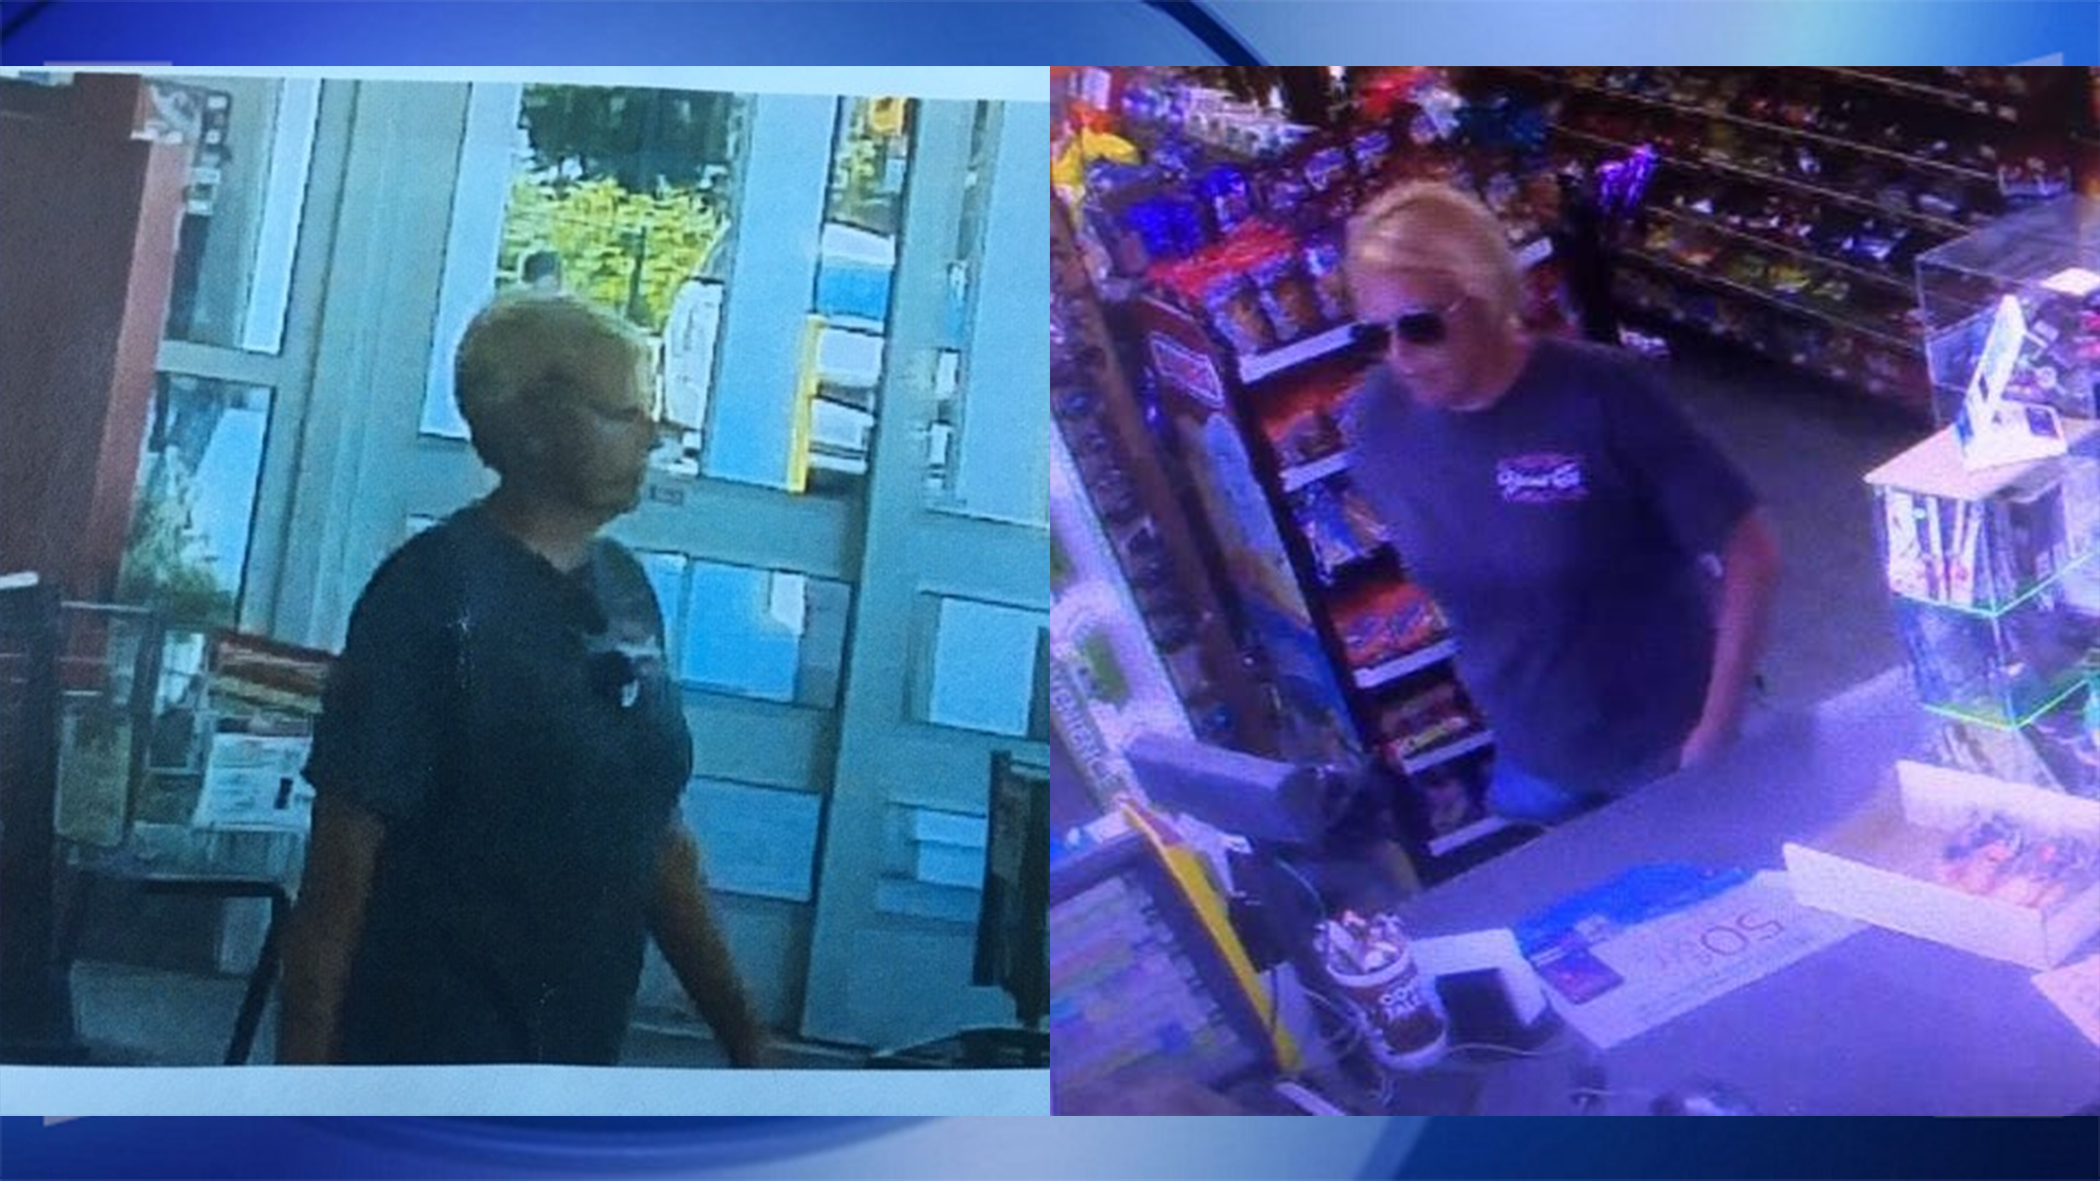 MBPD investigating stolen credit cards case | WBTW